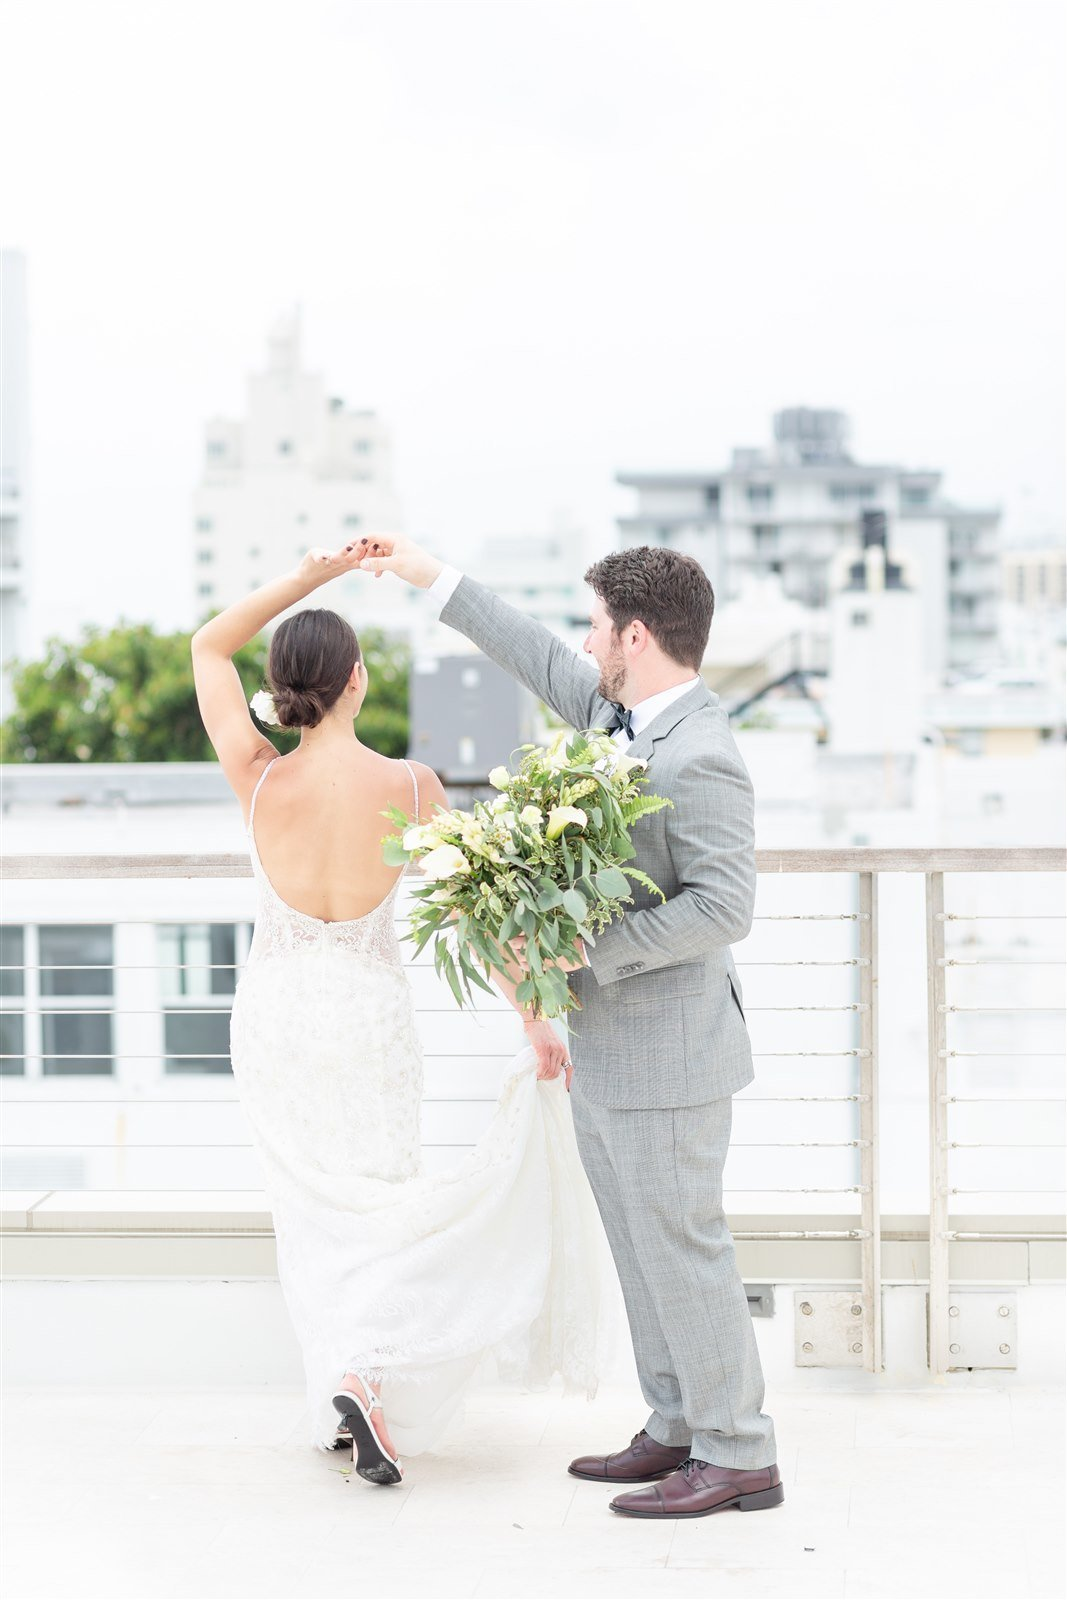 Betsy-Hotel-Miami-Beach-Wedding-Bride-and-Groom-Chris-and-Micaela-Photography-32